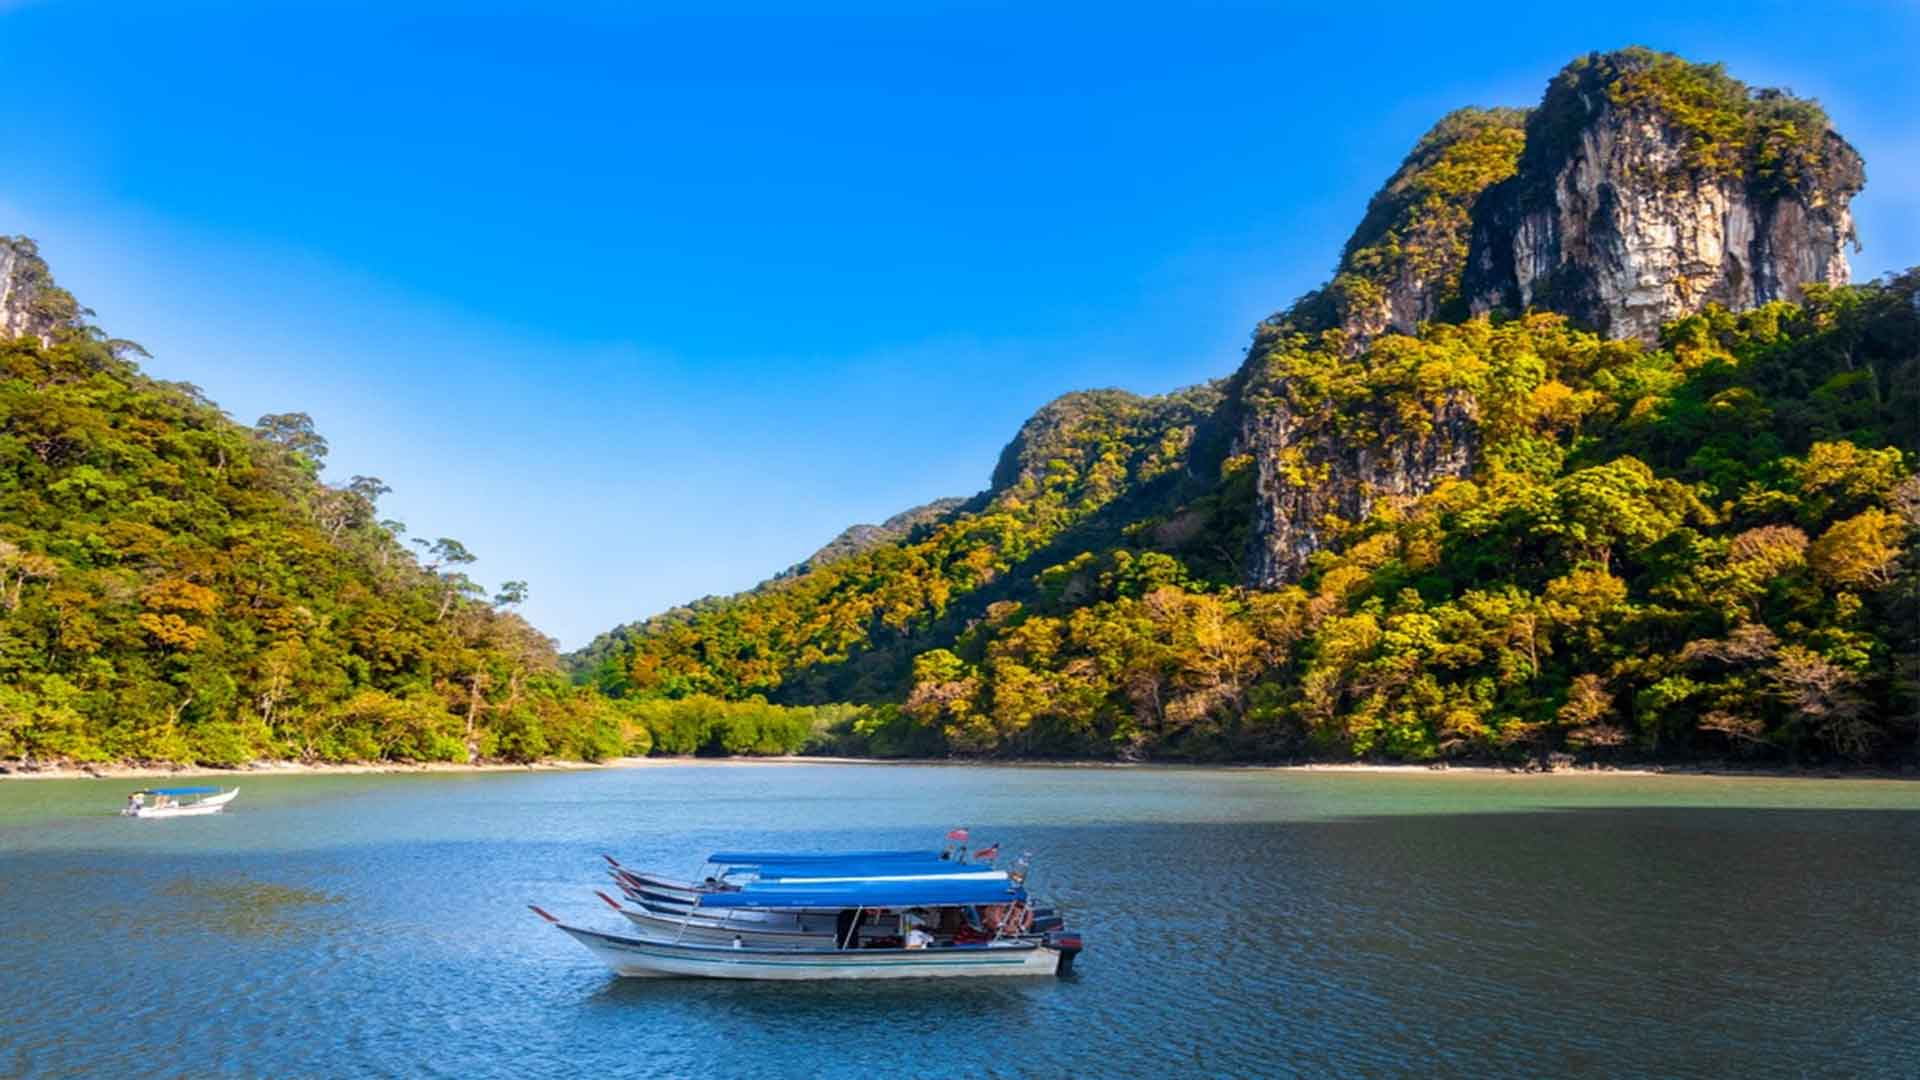 The Ultimate Malaysia Vacation Travel Guide Zen Tripstar Magnificent scenery of the Kilim Geoforest Park in Langkawi Malaysia